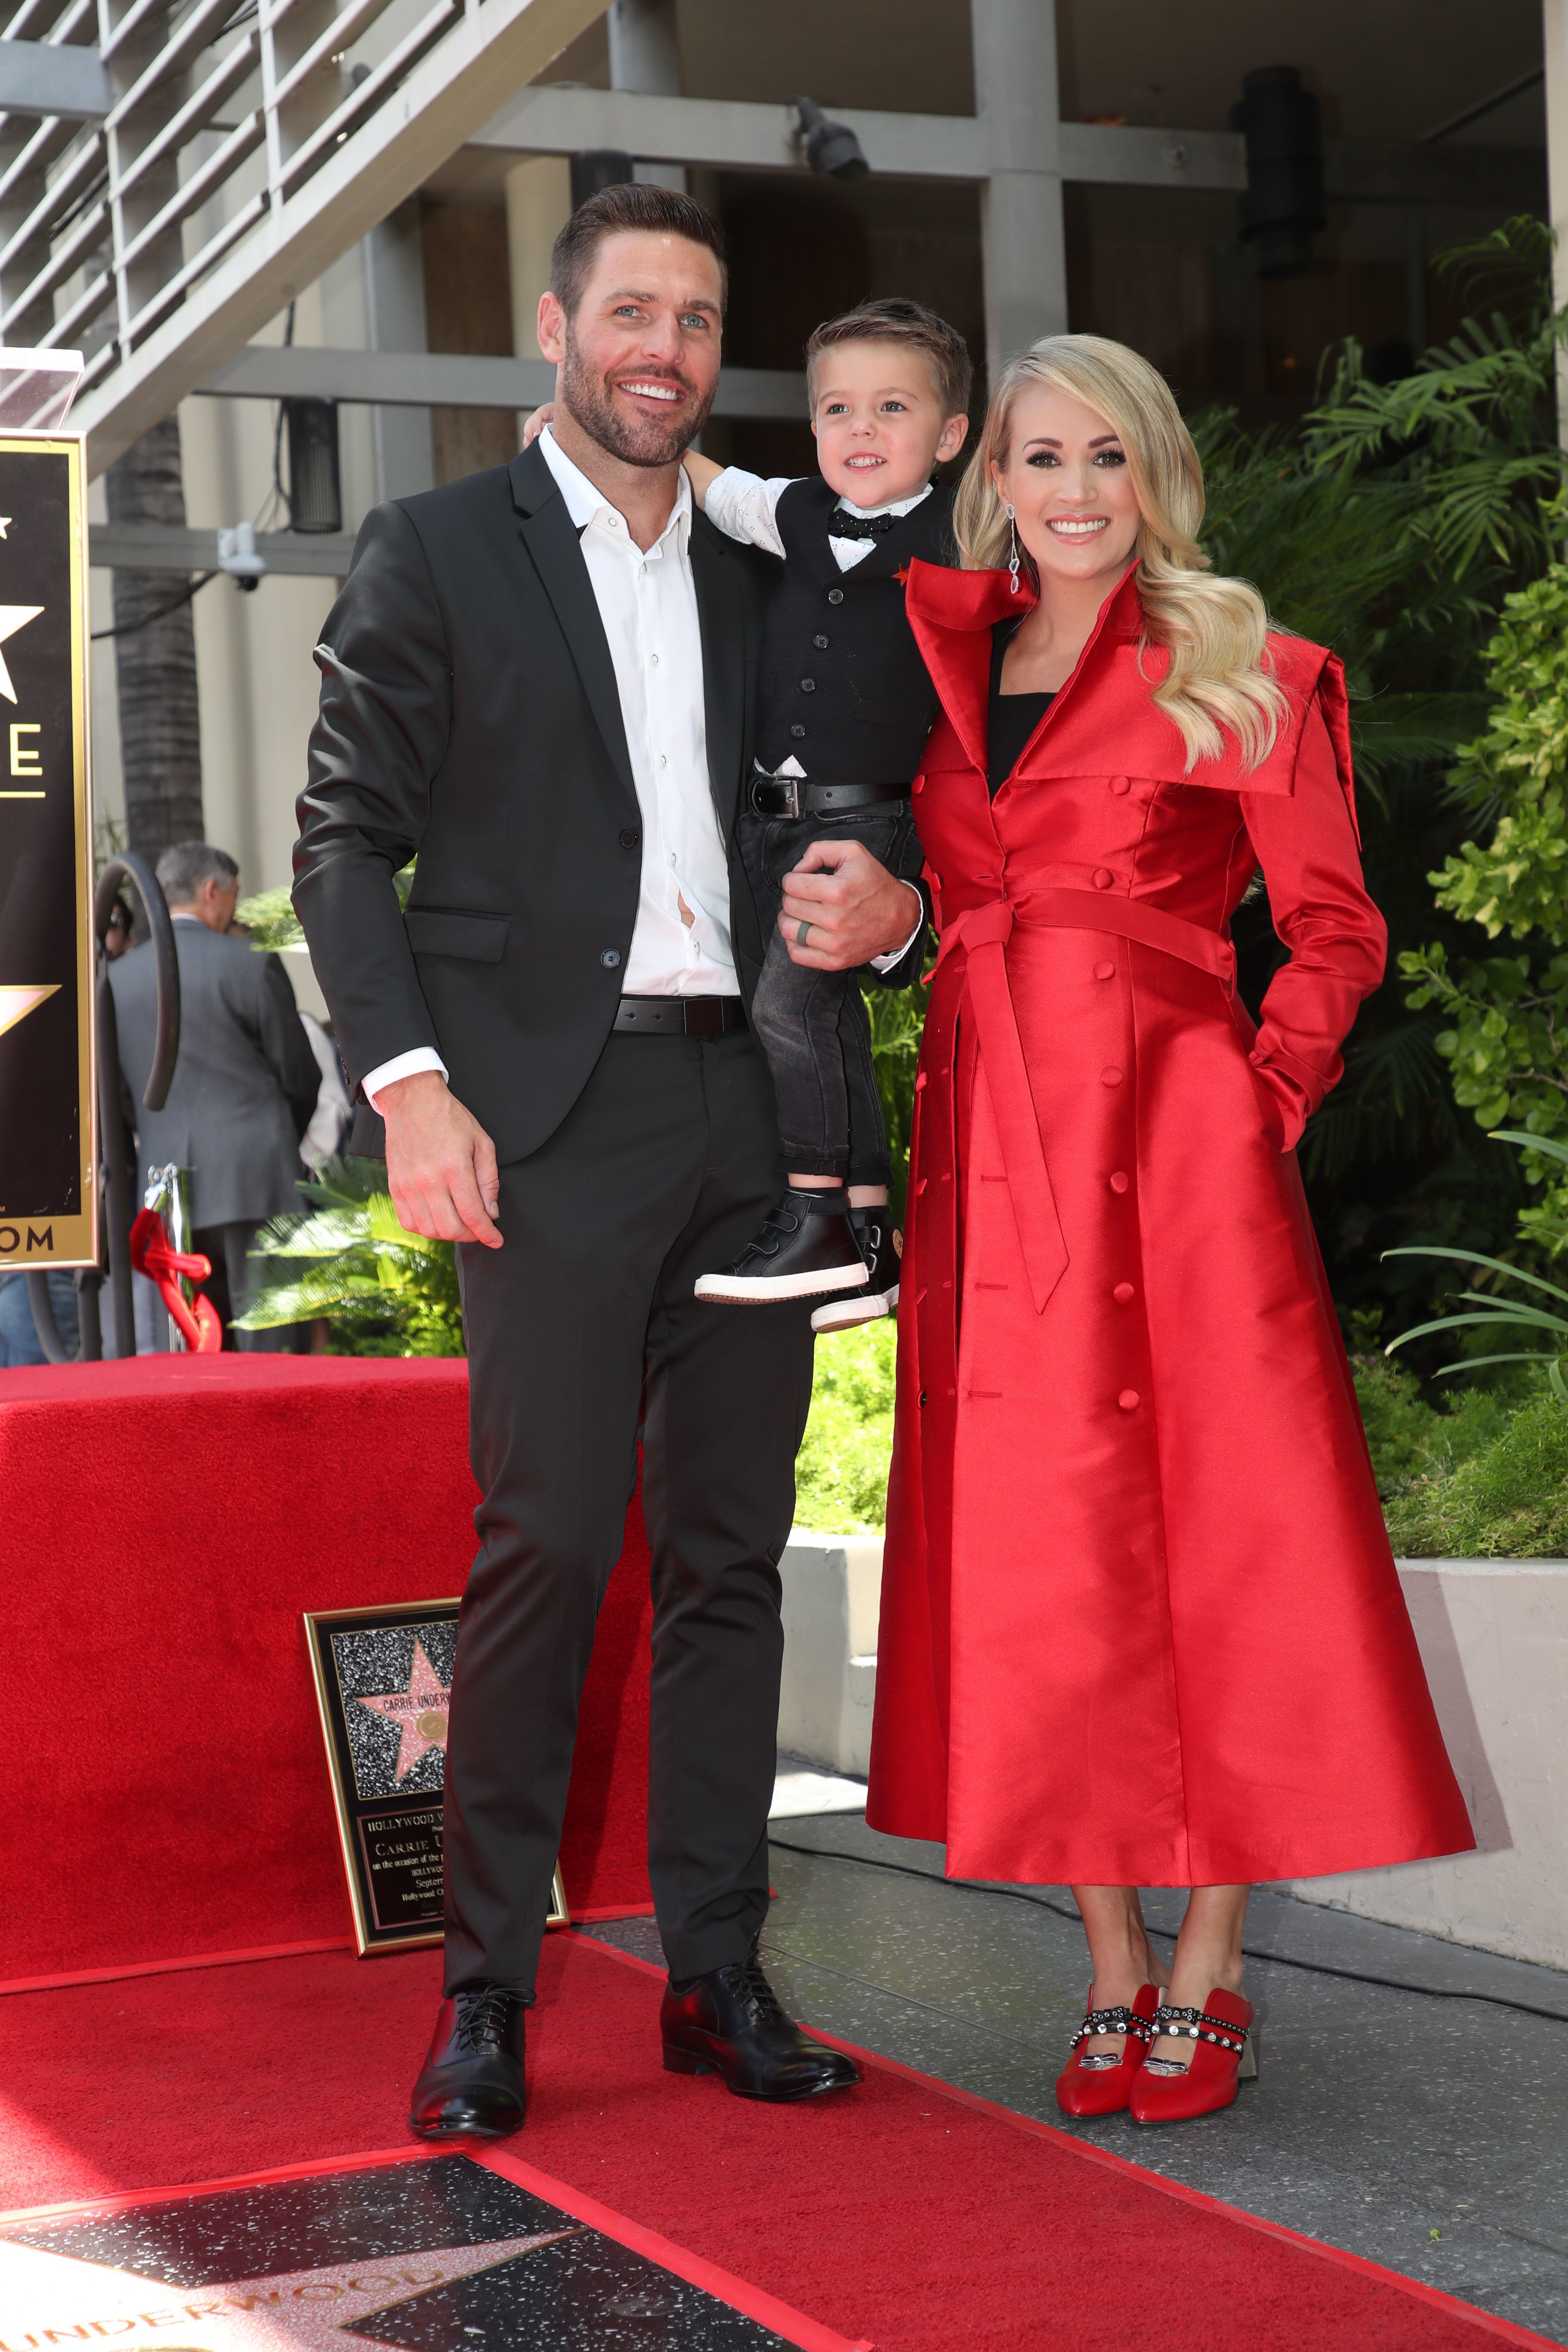 Carrie Underwood, Mike Fisher and son Isaiah pose at her Hollywood Walk of Fame star ceremony on Sept. 20, 2018.